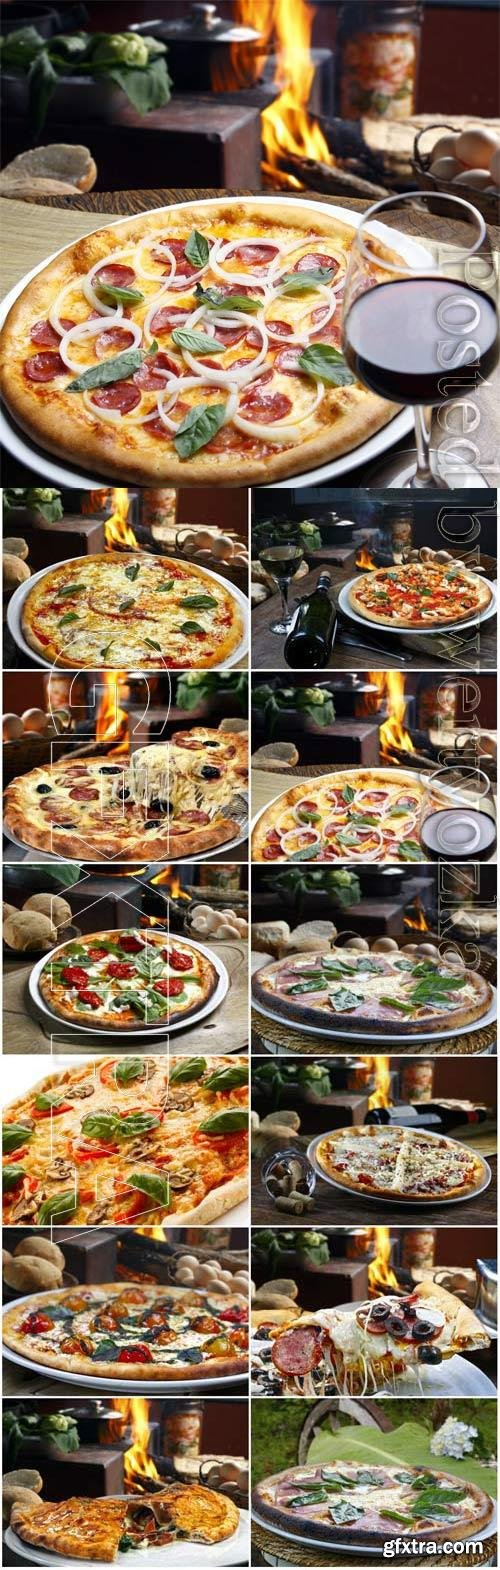 Delicious pizza and glass with wine stock photo